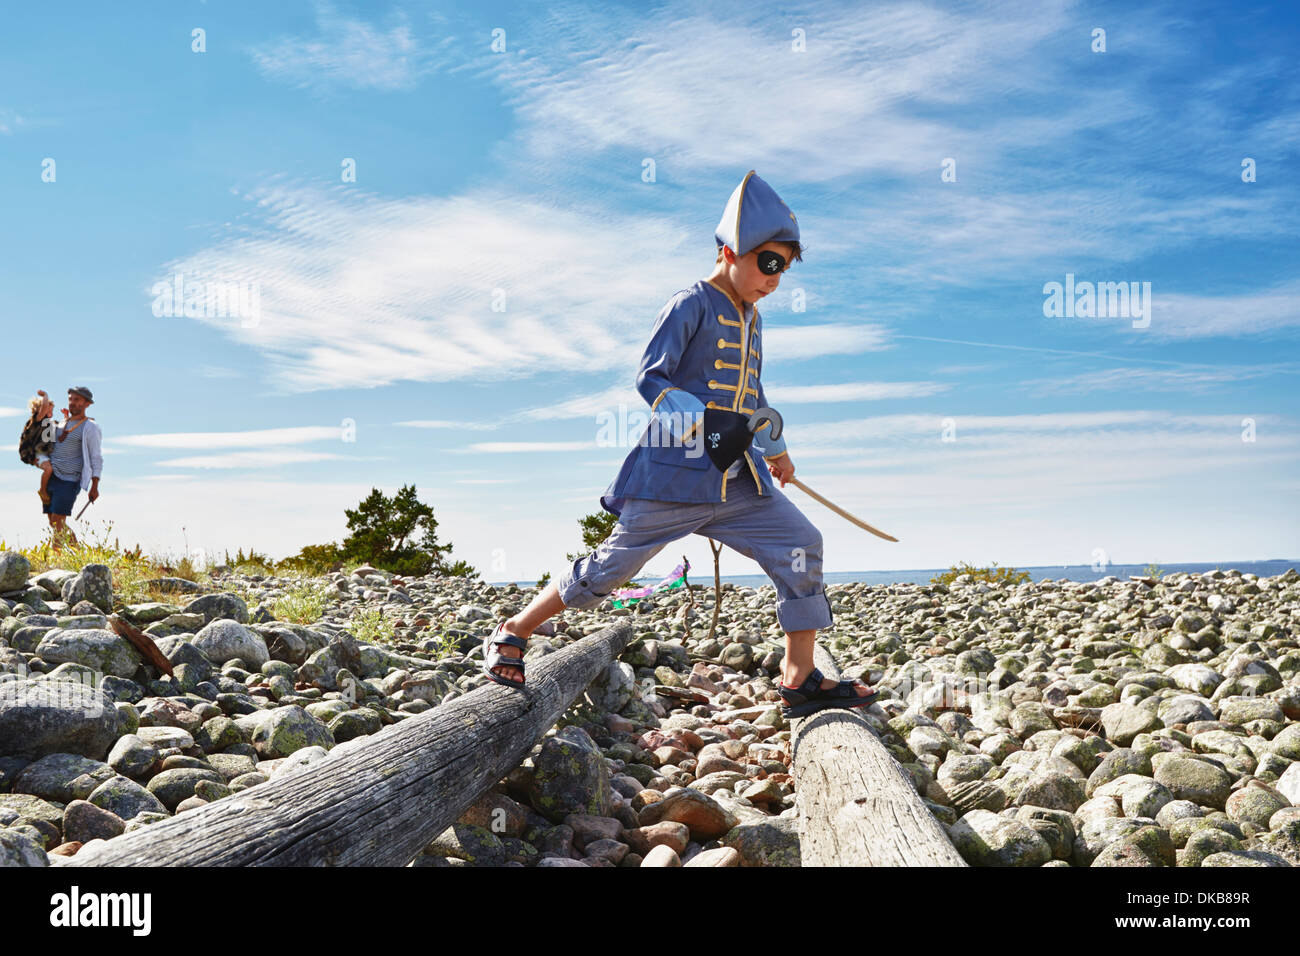 Boy dressed as pirate stepping across wooden logs on beach, Eggergrund, Sweden - Stock Image